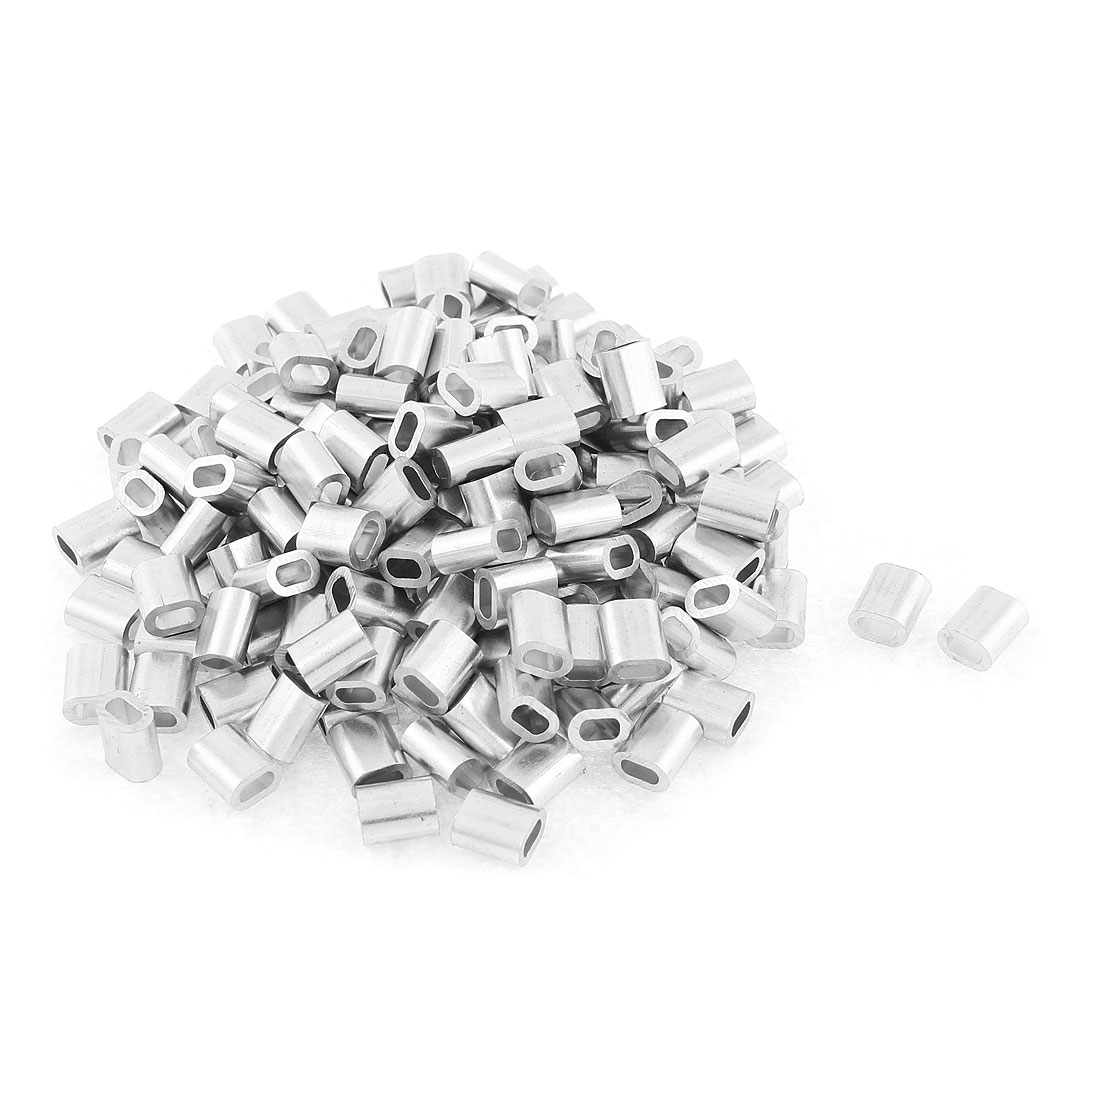 "Steel Wire Rope Aluminum Fittings Loop Ferrules Sleeves 2mm 5/64"" 200 Pcs"